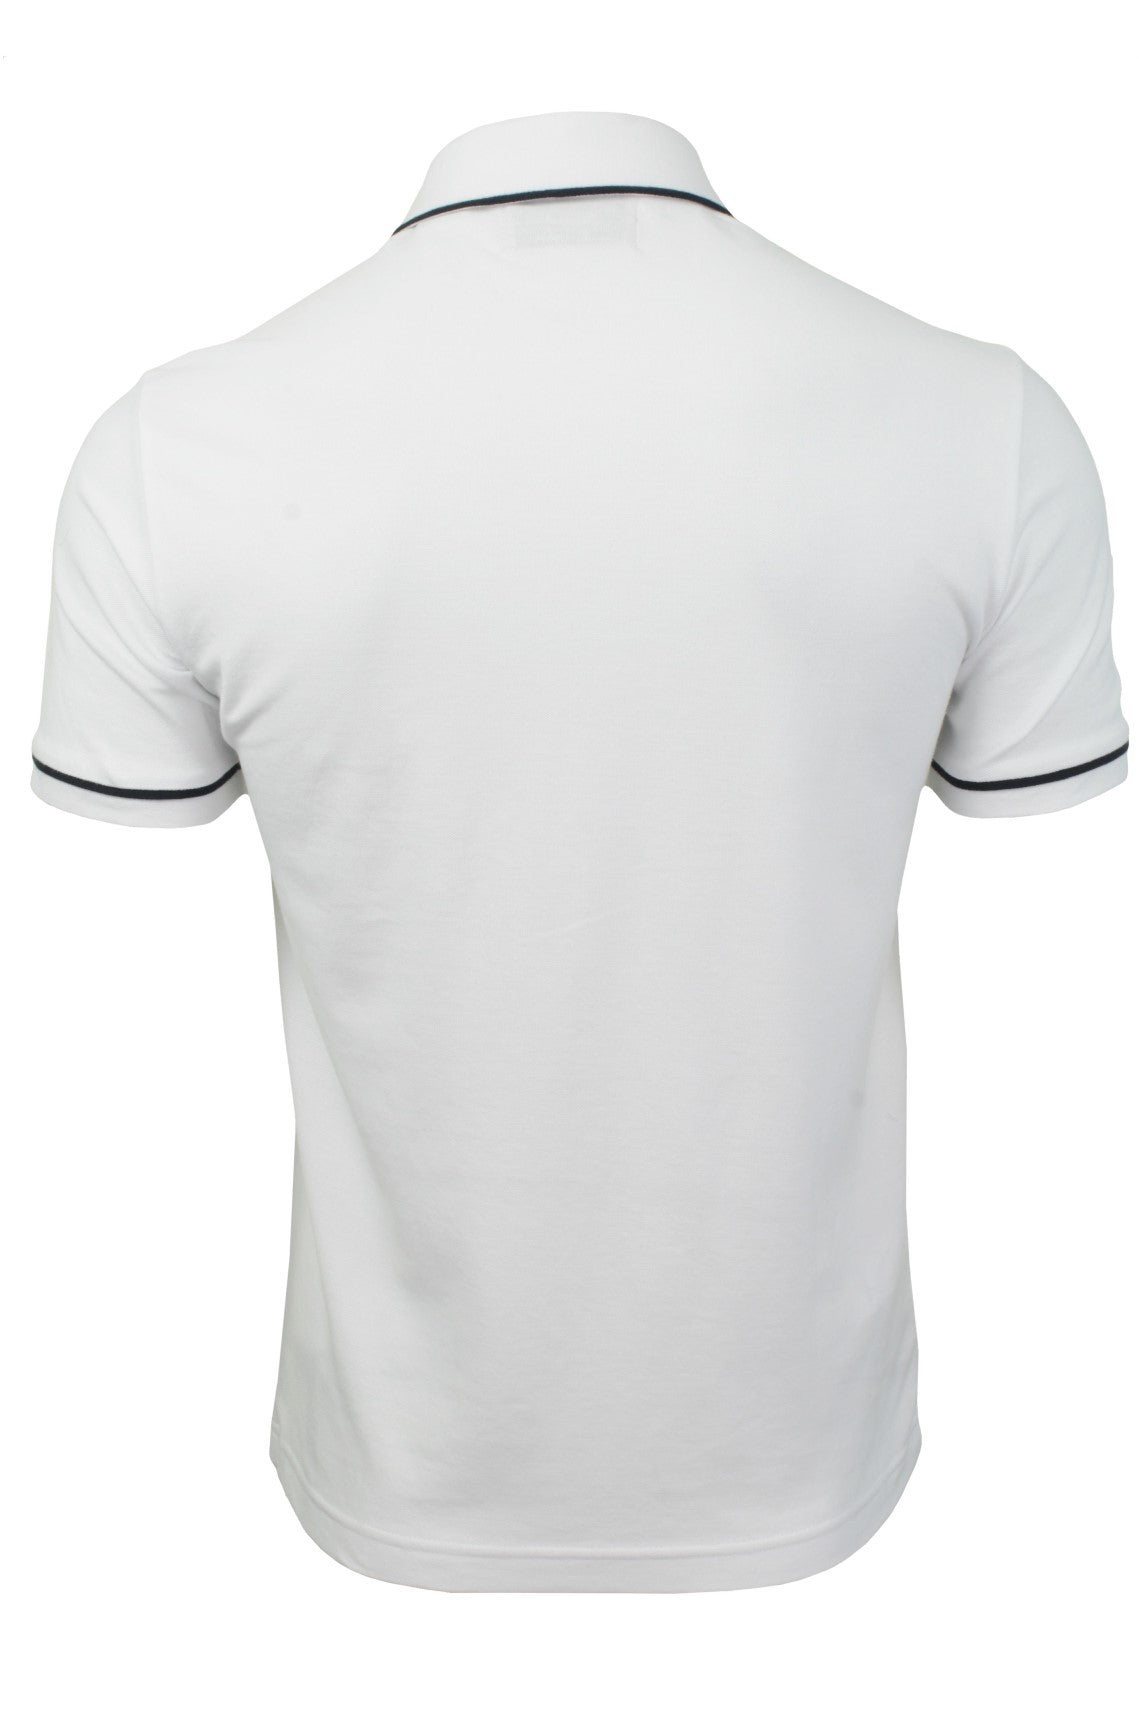 Mens Polo T-Shirt by Original Penguin 'Earl' Short Sleeved_03_Opkf3204_Bright White/ Sapphire